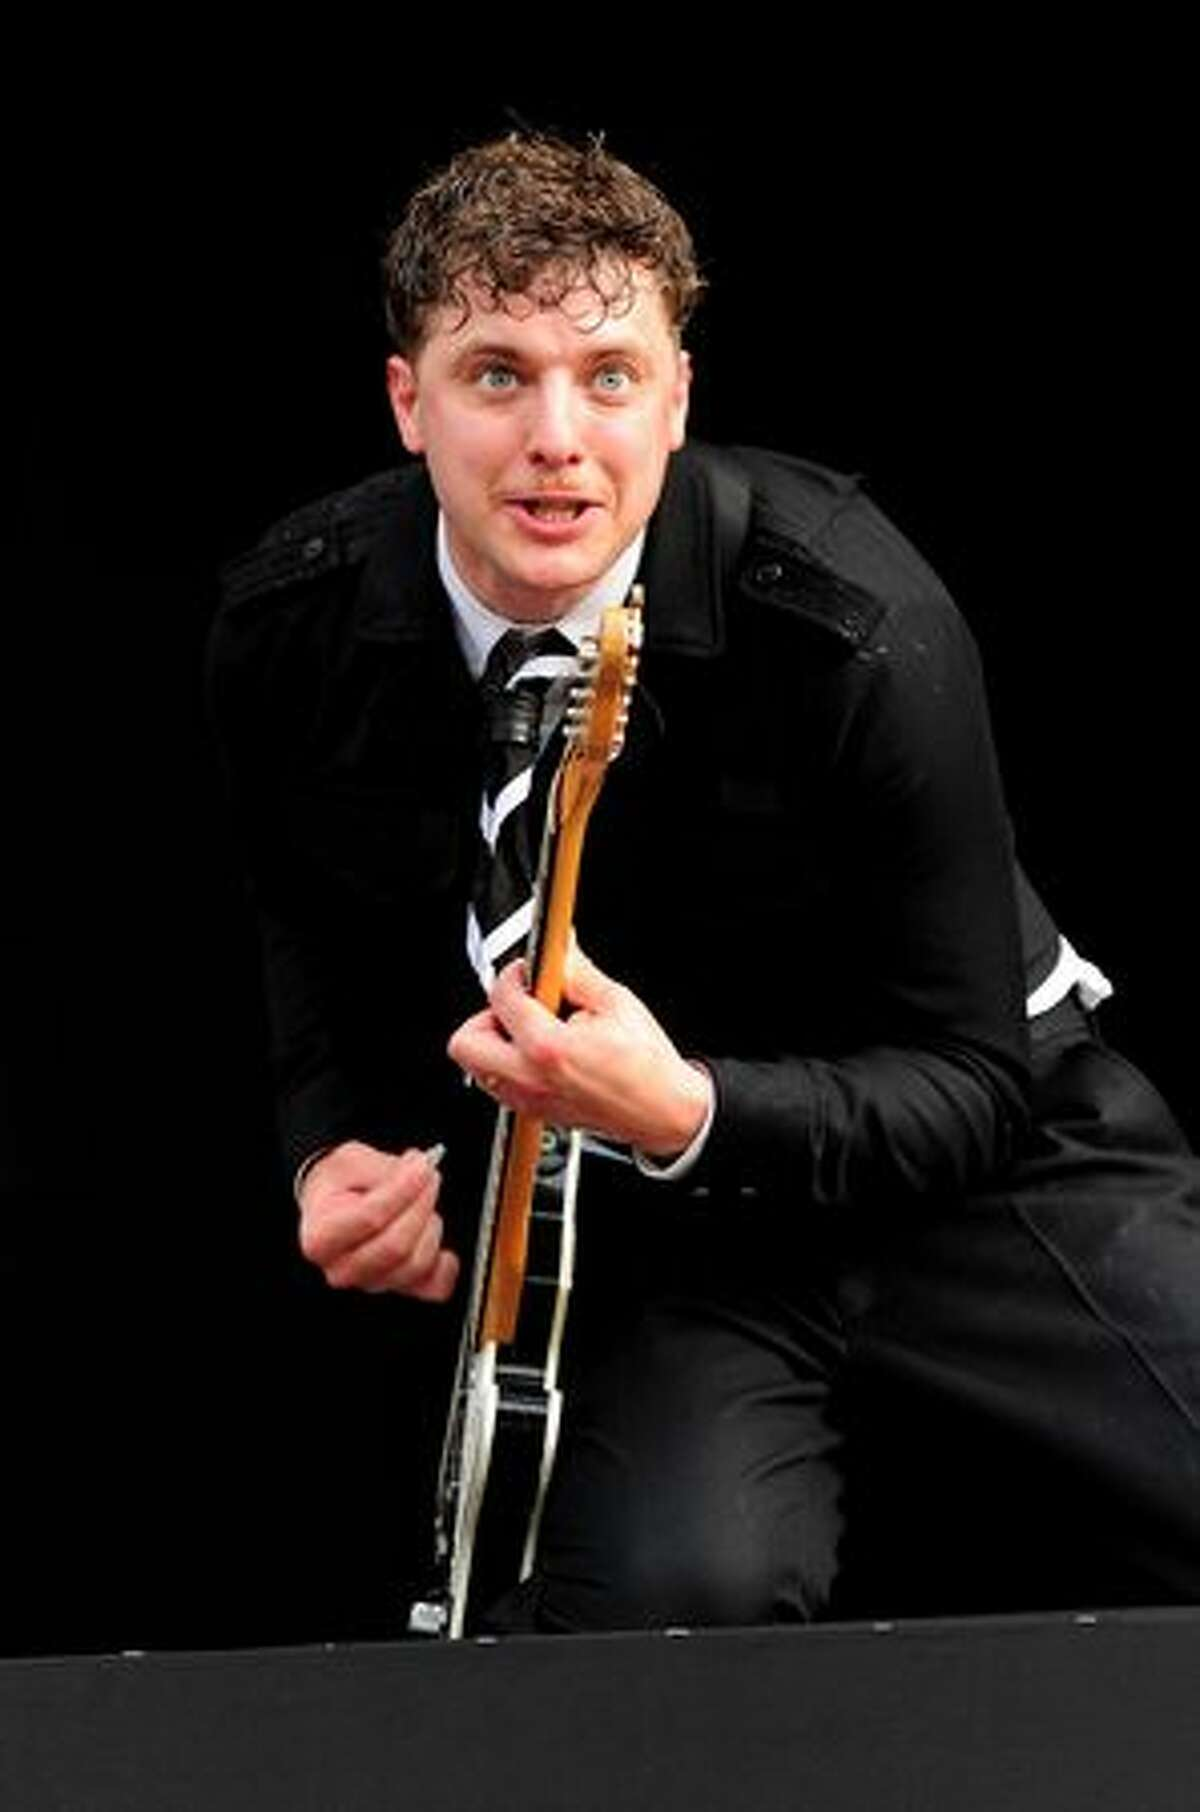 Nicholaus Arson of The Hives performs during Day 1 of the Hard Rock Calling festival held in Hyde Park on June 25, 2010 in London, England.